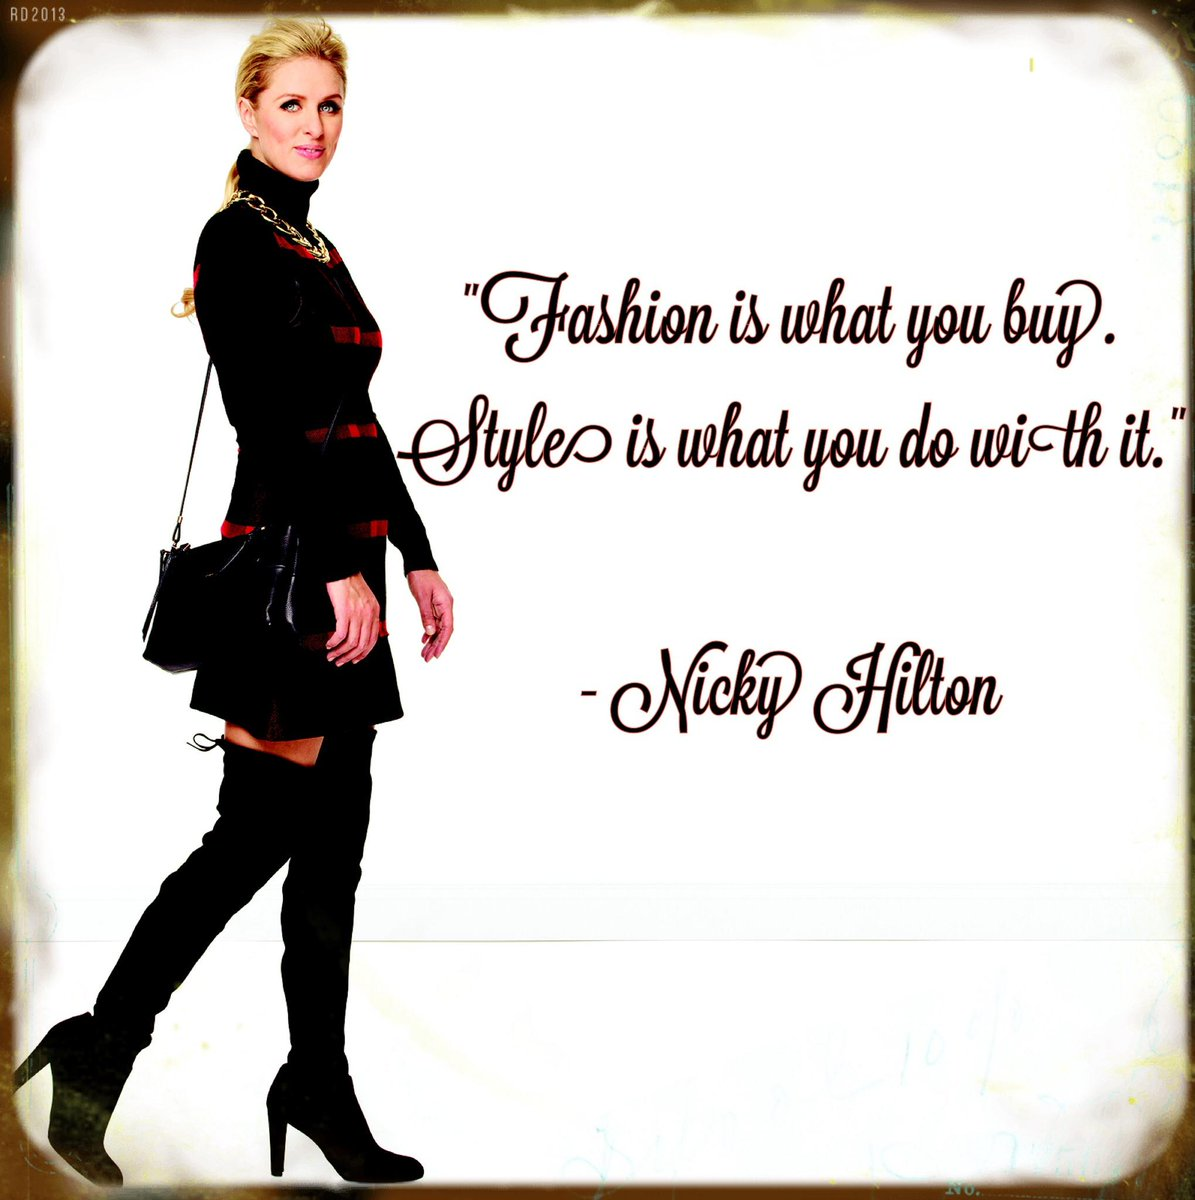 TODAY! @NickyHilton #365Style book signing 4:30-6p @ #CenterBar. First 10 guests get a free copy! *300 avail. http://t.co/ywit2HMN1E